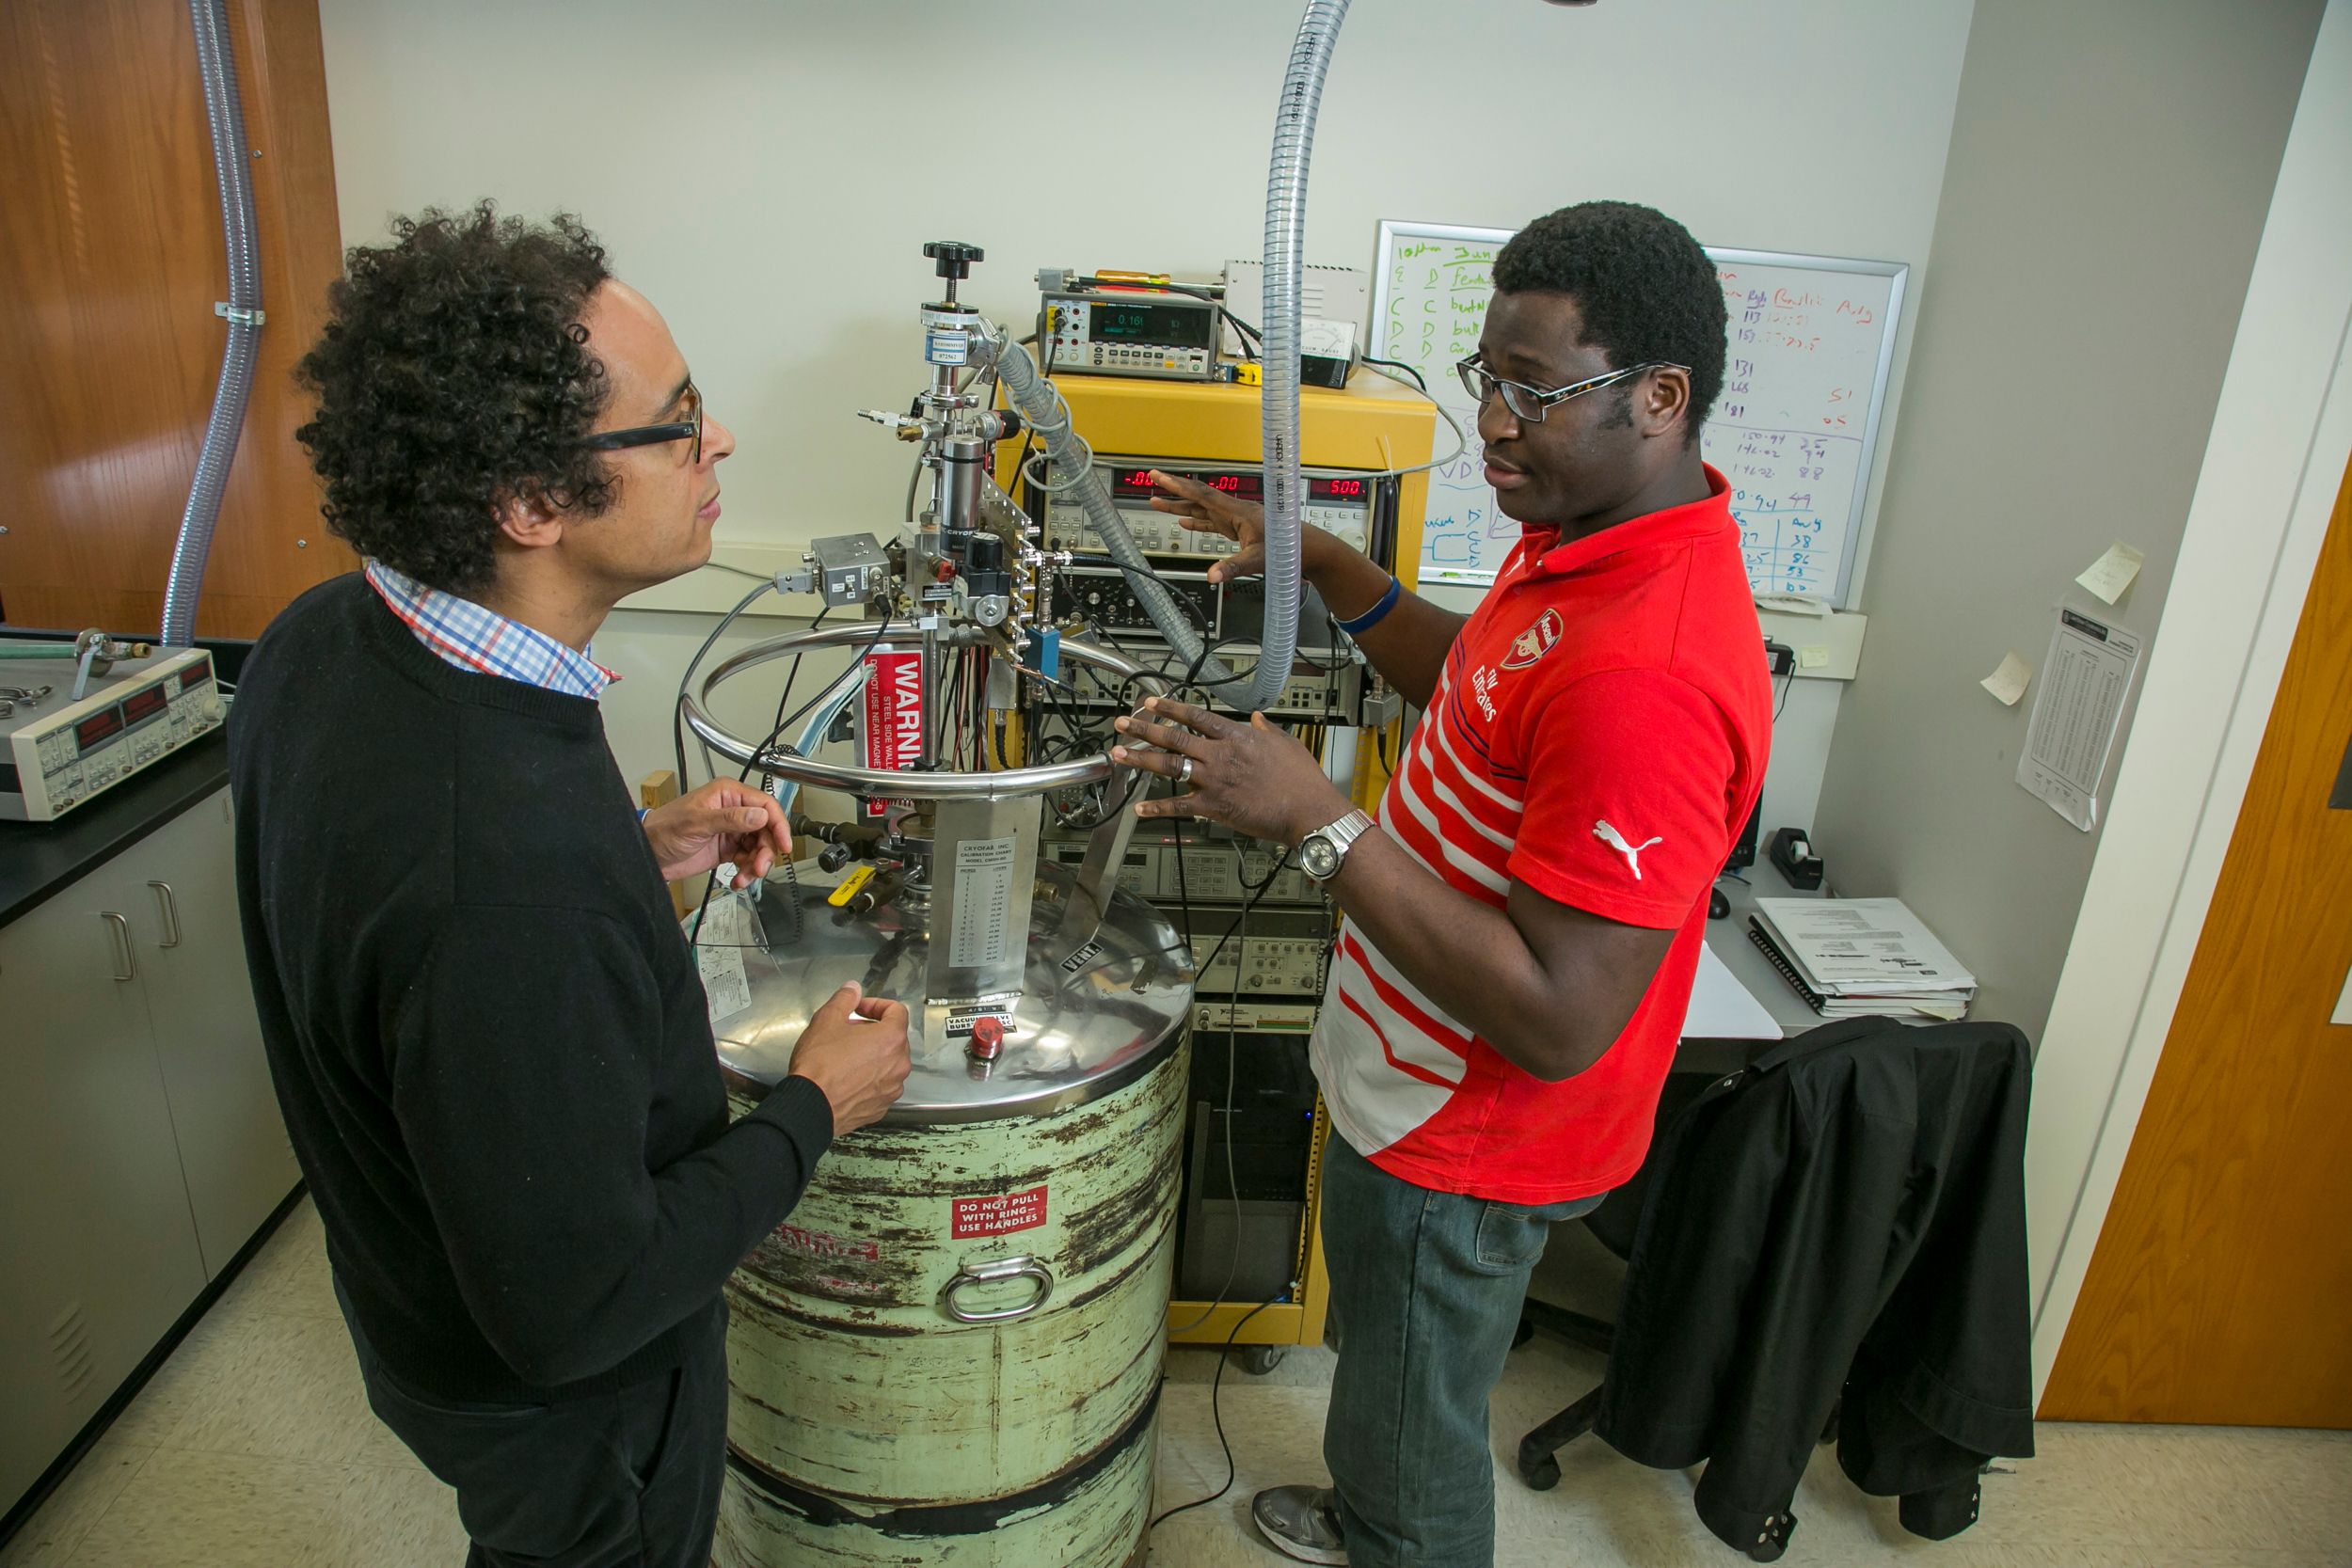 The Richardson lab investigates how to scale synthesis procedures for nanoparticles, other than traditional hot injection.